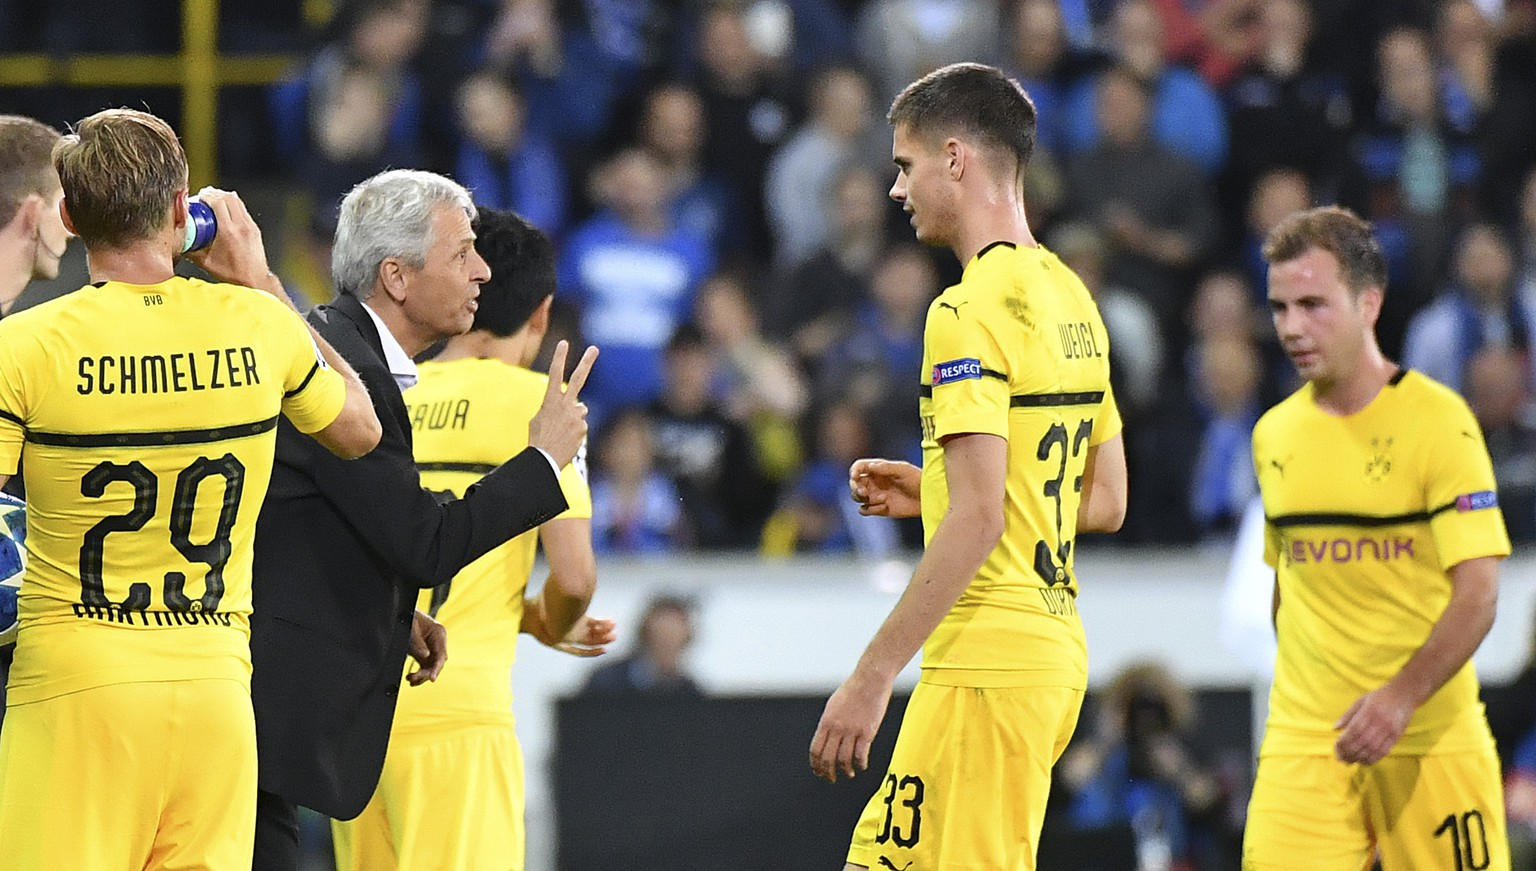 Dortmund coach Lucien Favre, left, gestures to his players during the Champions League group A soccer match between Club Brugge and Borussia Dortmund at the Jan Breydel Stadium in Bruges, Belgium, Tuesday, Sept. 18, 2018. (AP Photo/Geert Vanden Wijngaert)